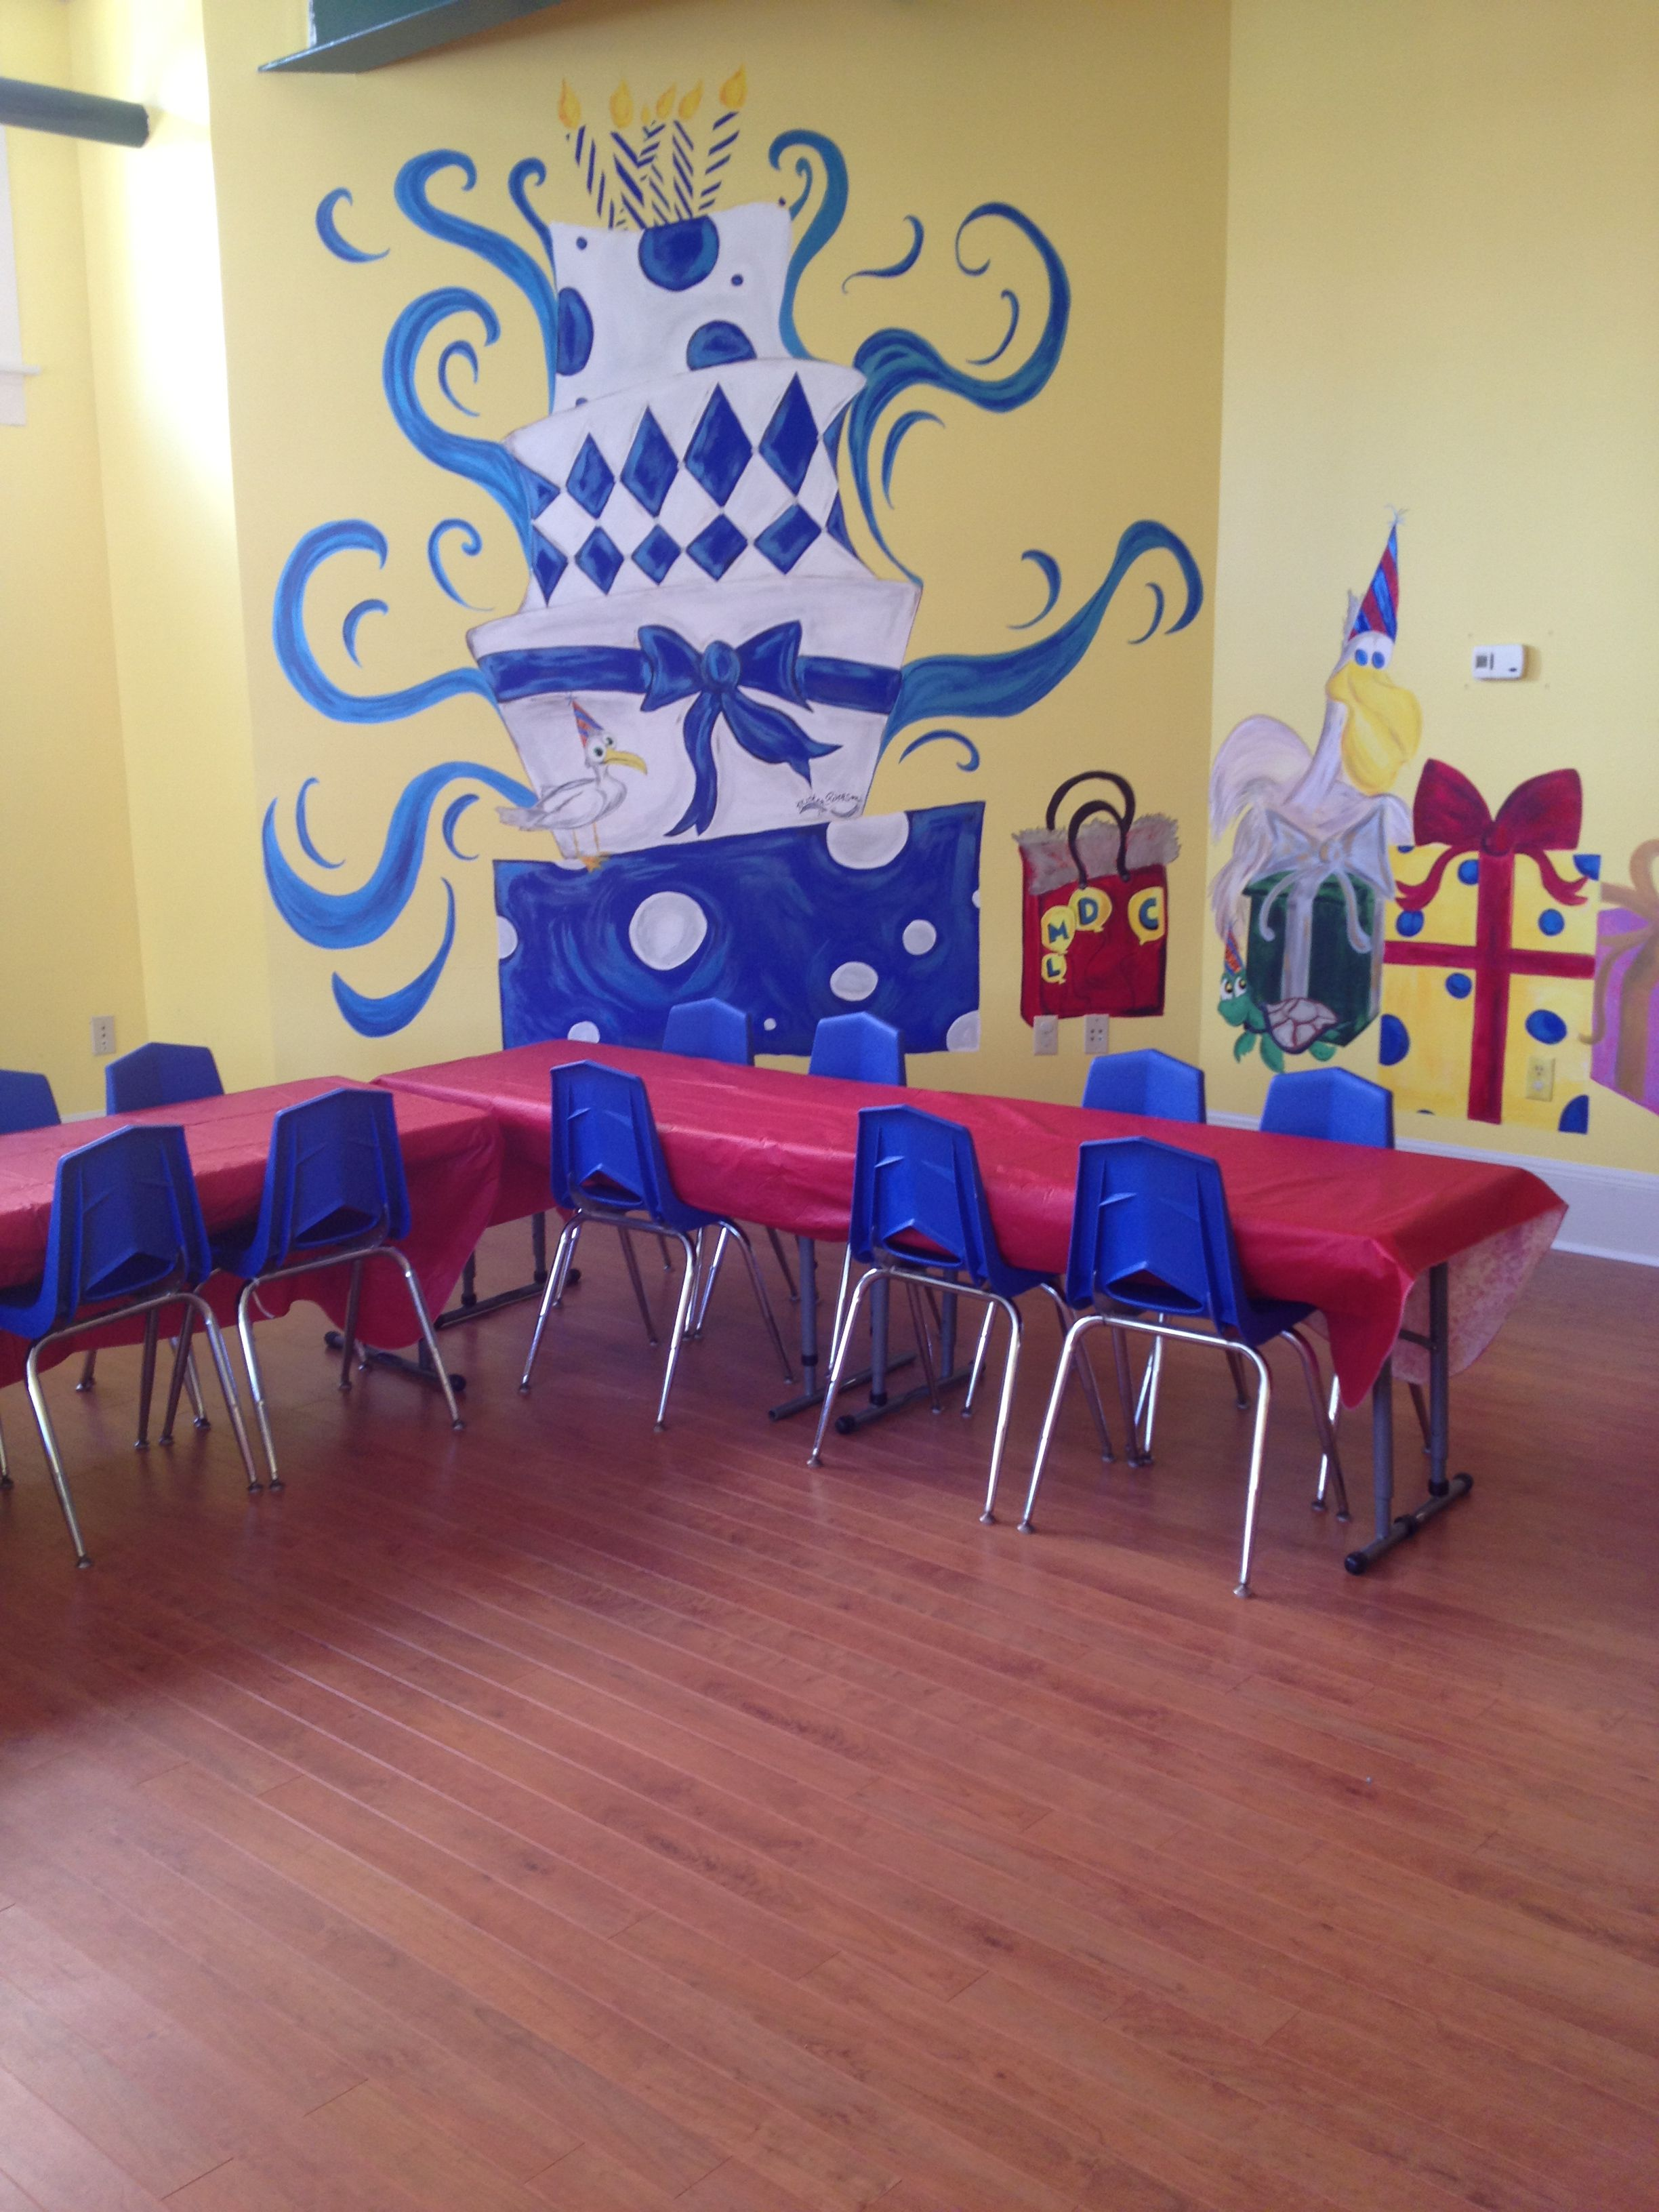 Fun kids class room with easy care laminate flooring